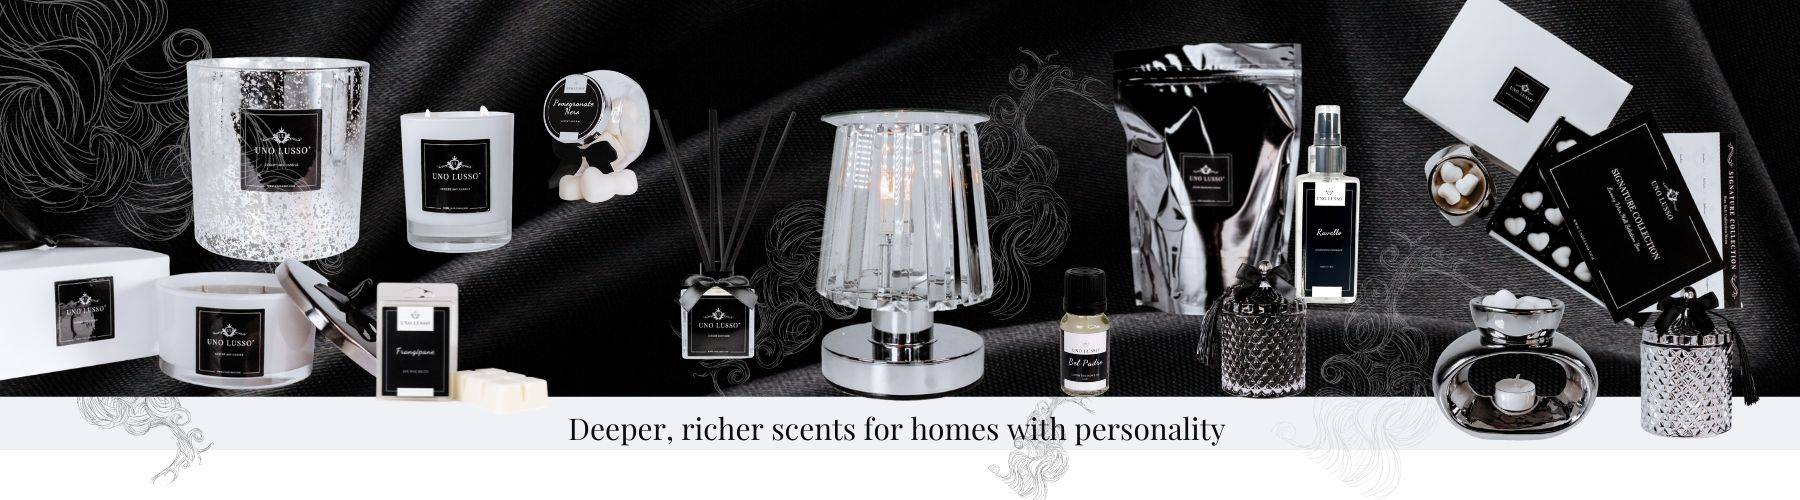 Nero Collection - deeper richer scented candles, wax melts, reed diffusers and more